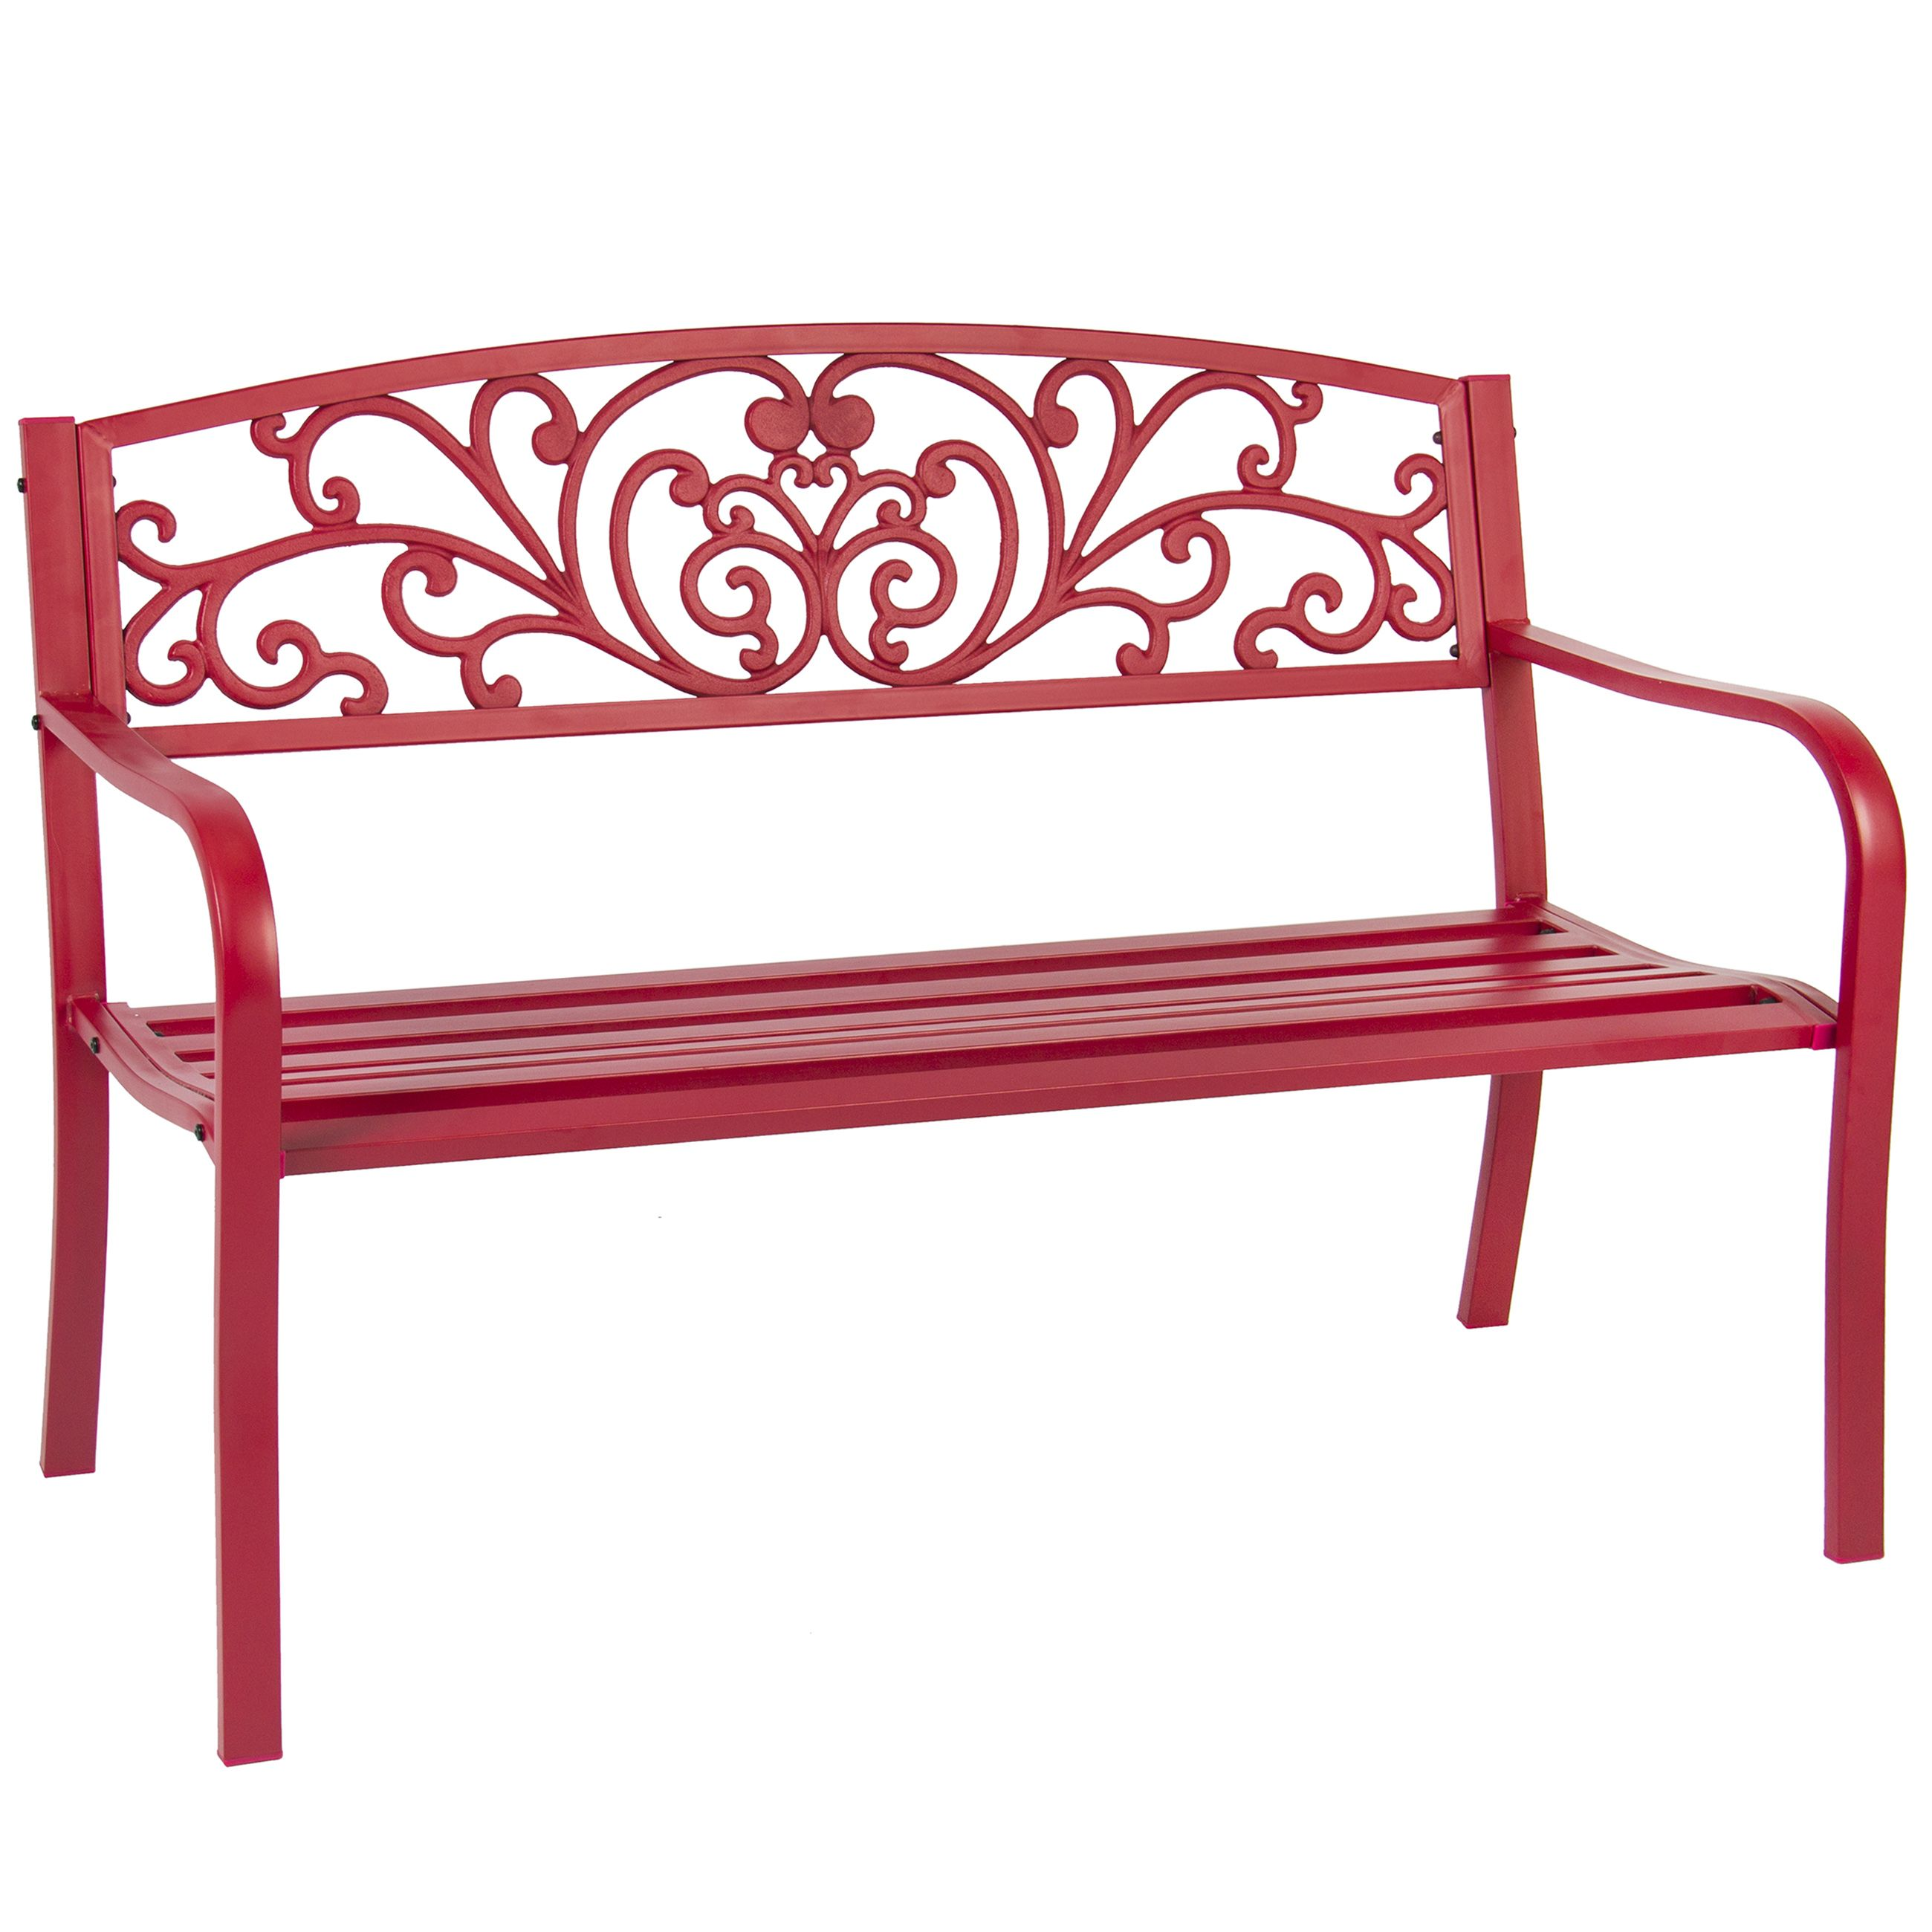 "BCP 50"" Patio Garden Bench Park Yard Outdoor Furniture Steel Frame"